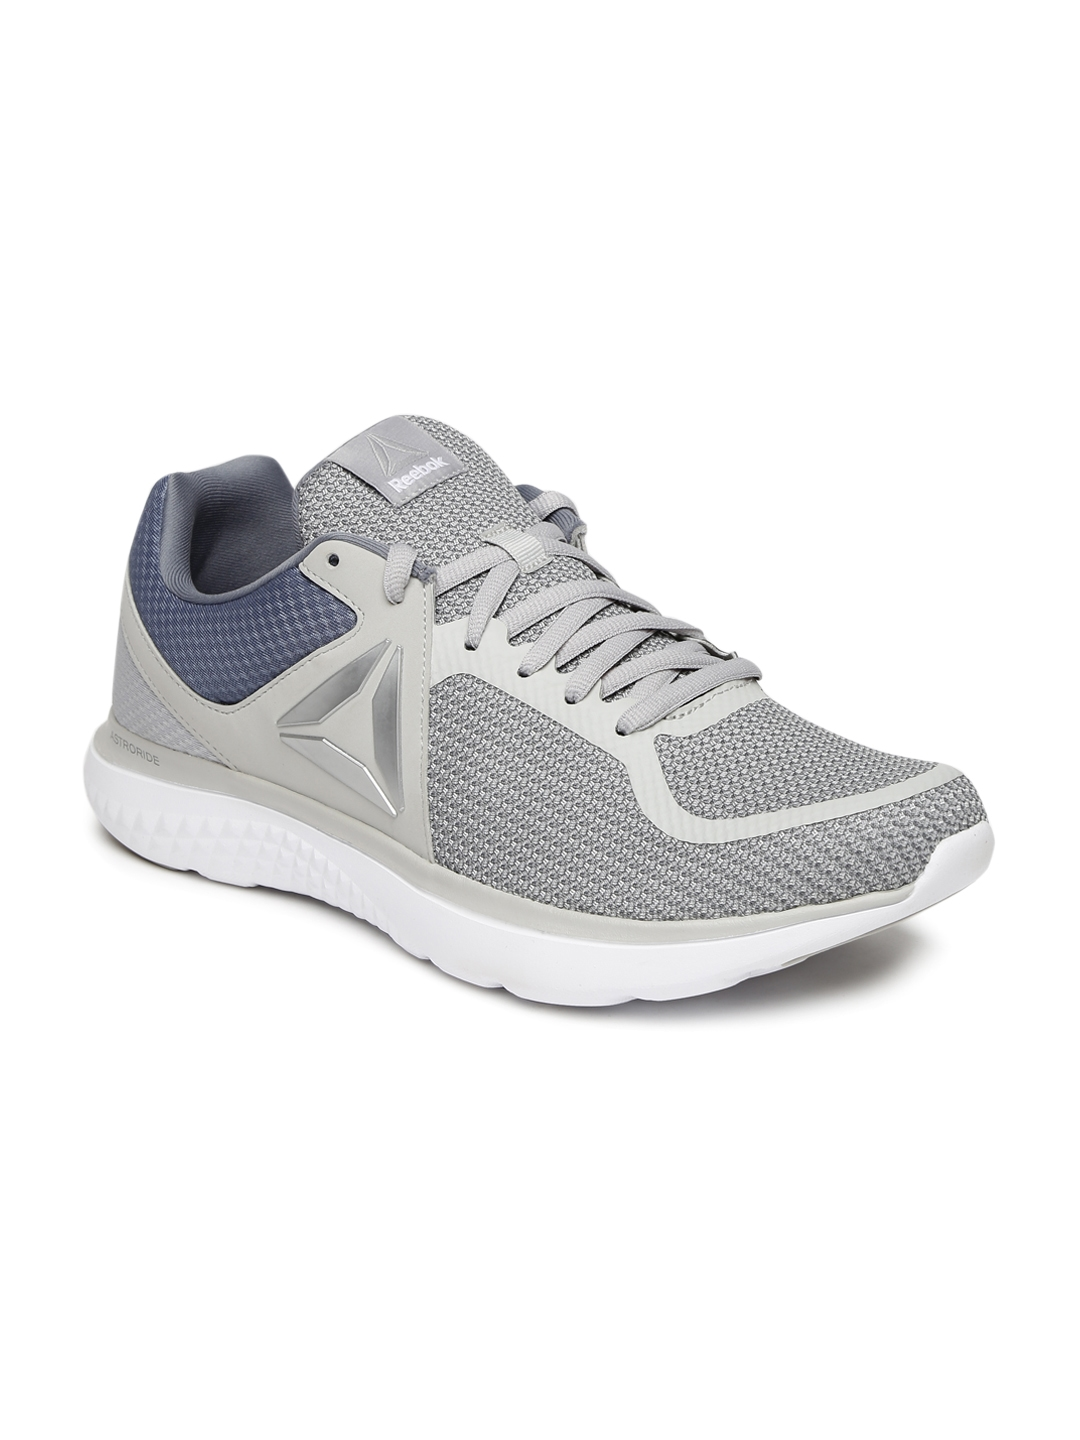 3711ca7a180 Buy Reebok Men Grey REEBOK ASTRORIDE RUN MT Running Shoes - Sports ...